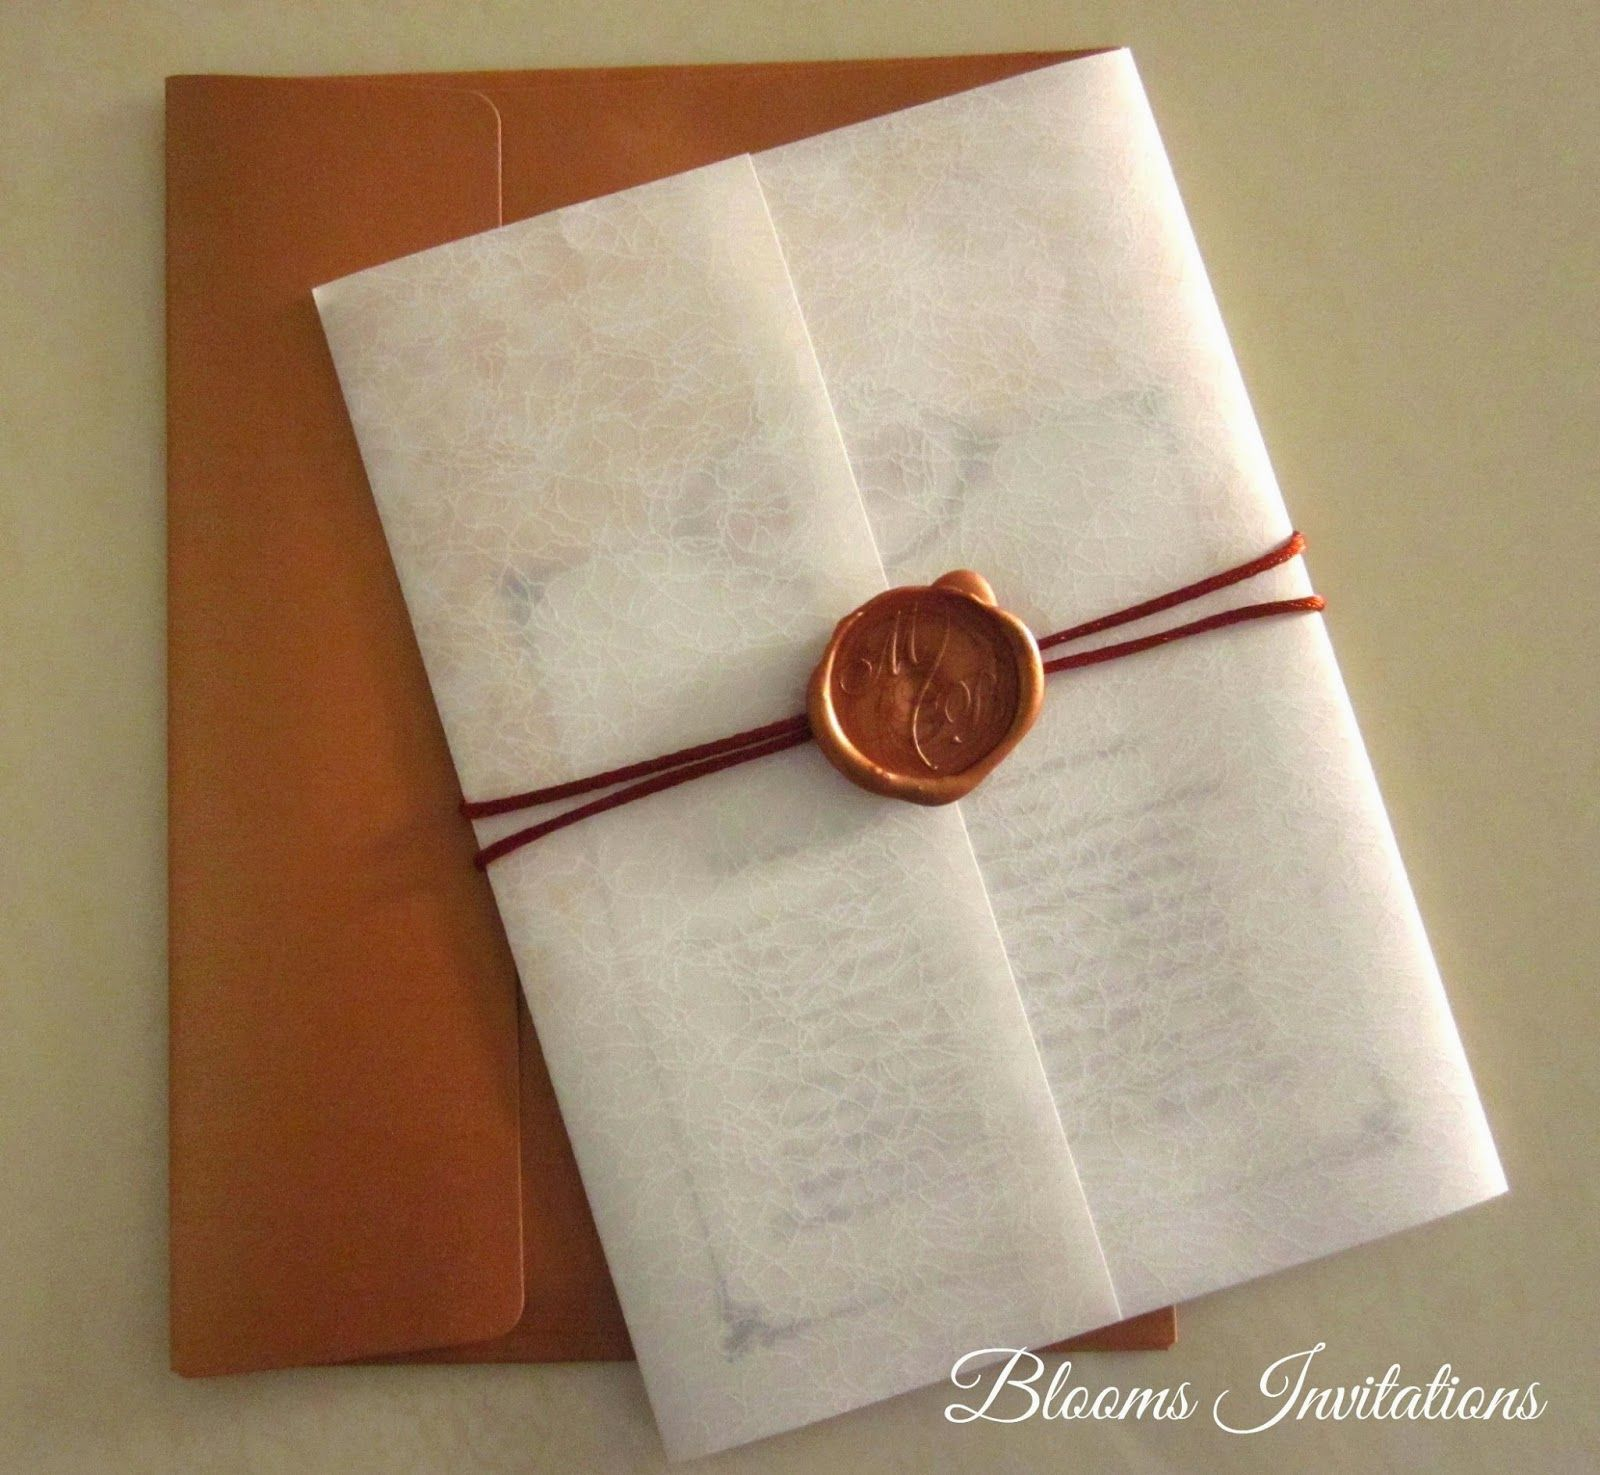 Wax Seal Wedding Invitation | Cards | Pinterest | Wax seals and Weddings